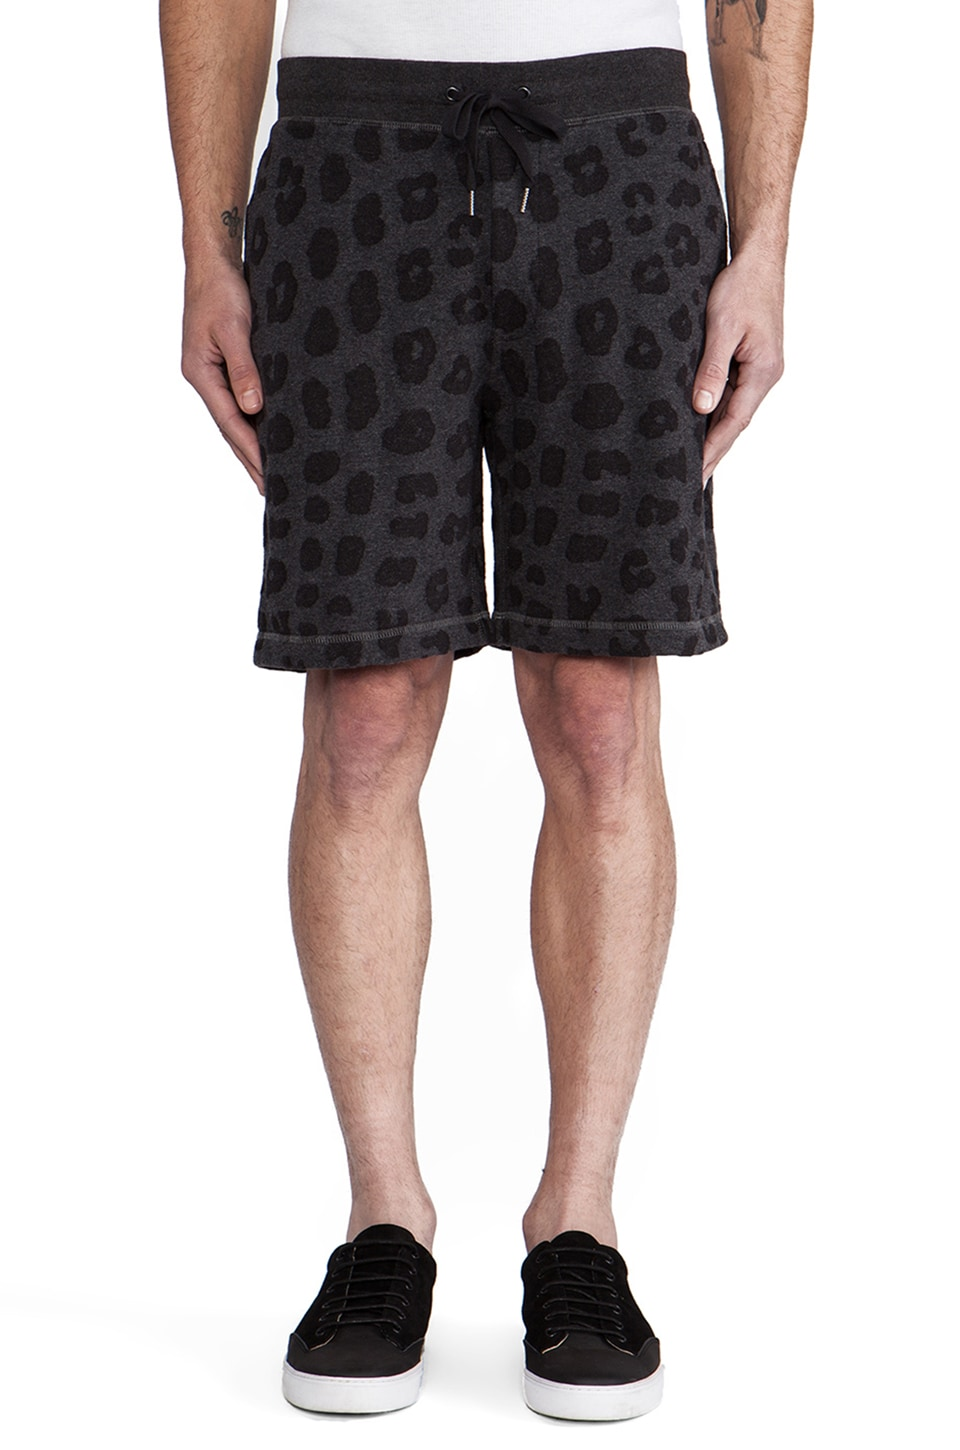 Marc by Marc Jacobs London Leopard Sweatshort in Black Melange